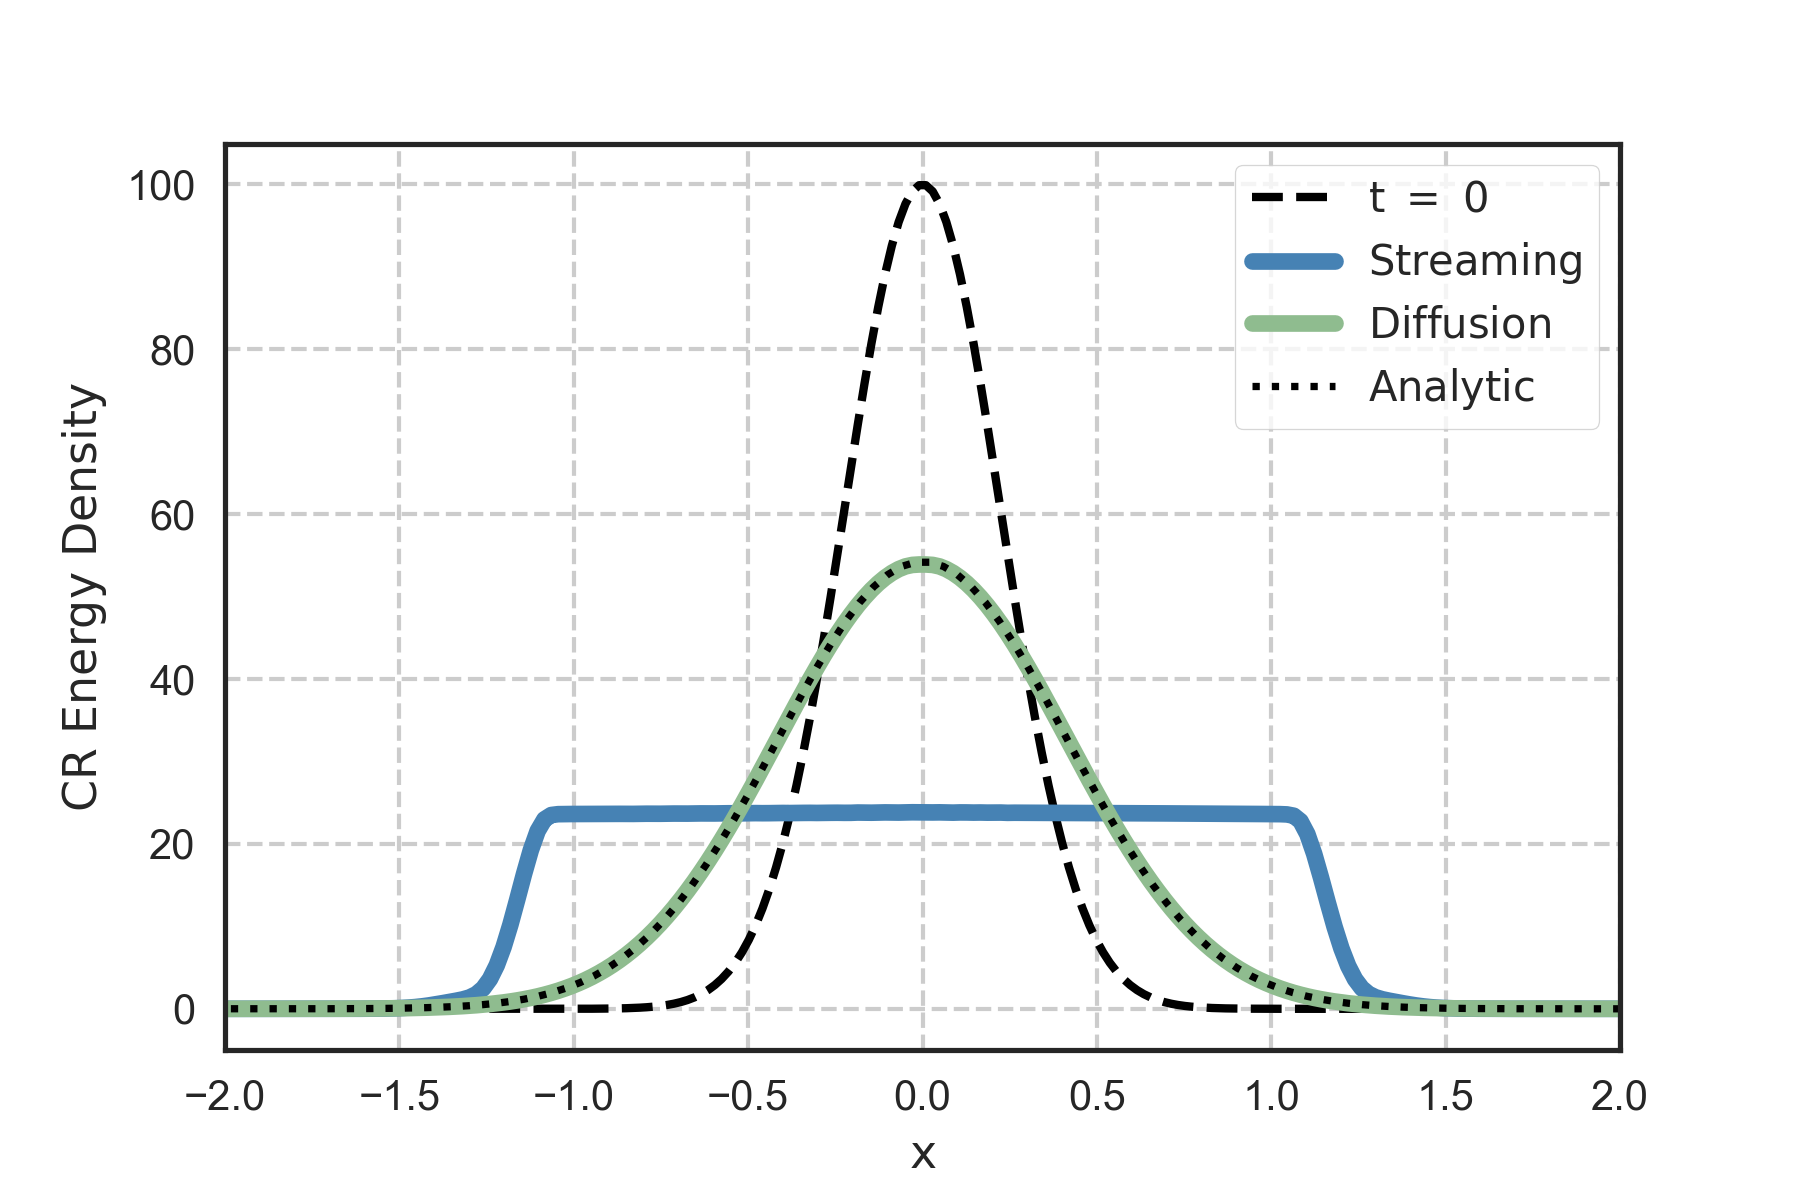 Figure 3:  Although no analytic solution exists for cosmic ray streaming, we compare the evolution of an initial Gaussian overdensity of cosmic ray energy under diffusion and streaming.